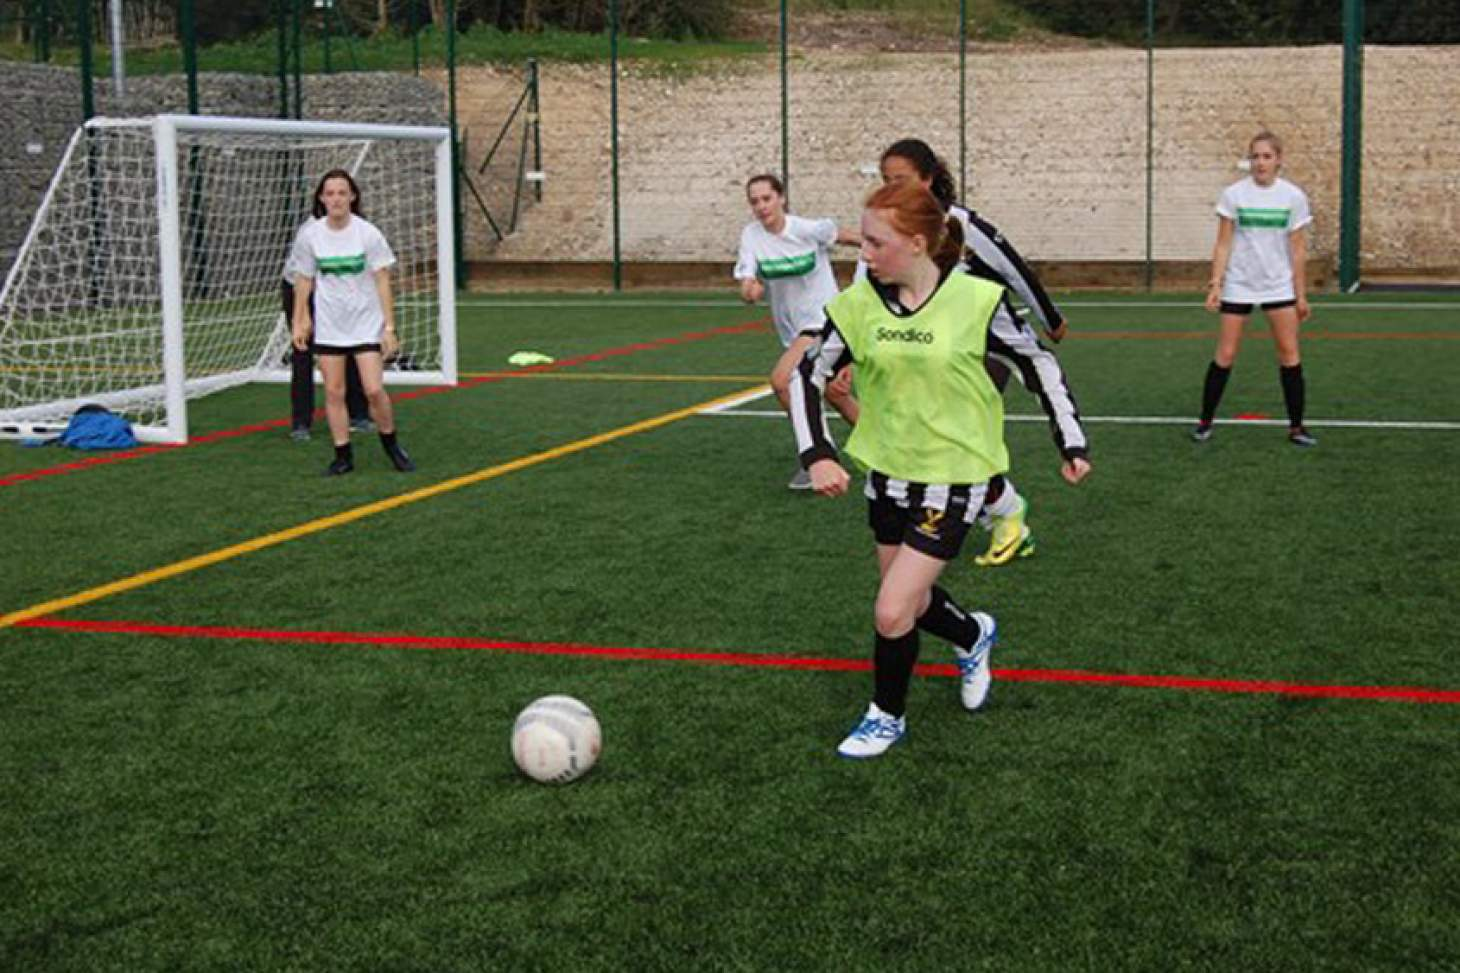 Dorothy Stringer School 7 a side | 3G Astroturf football pitch